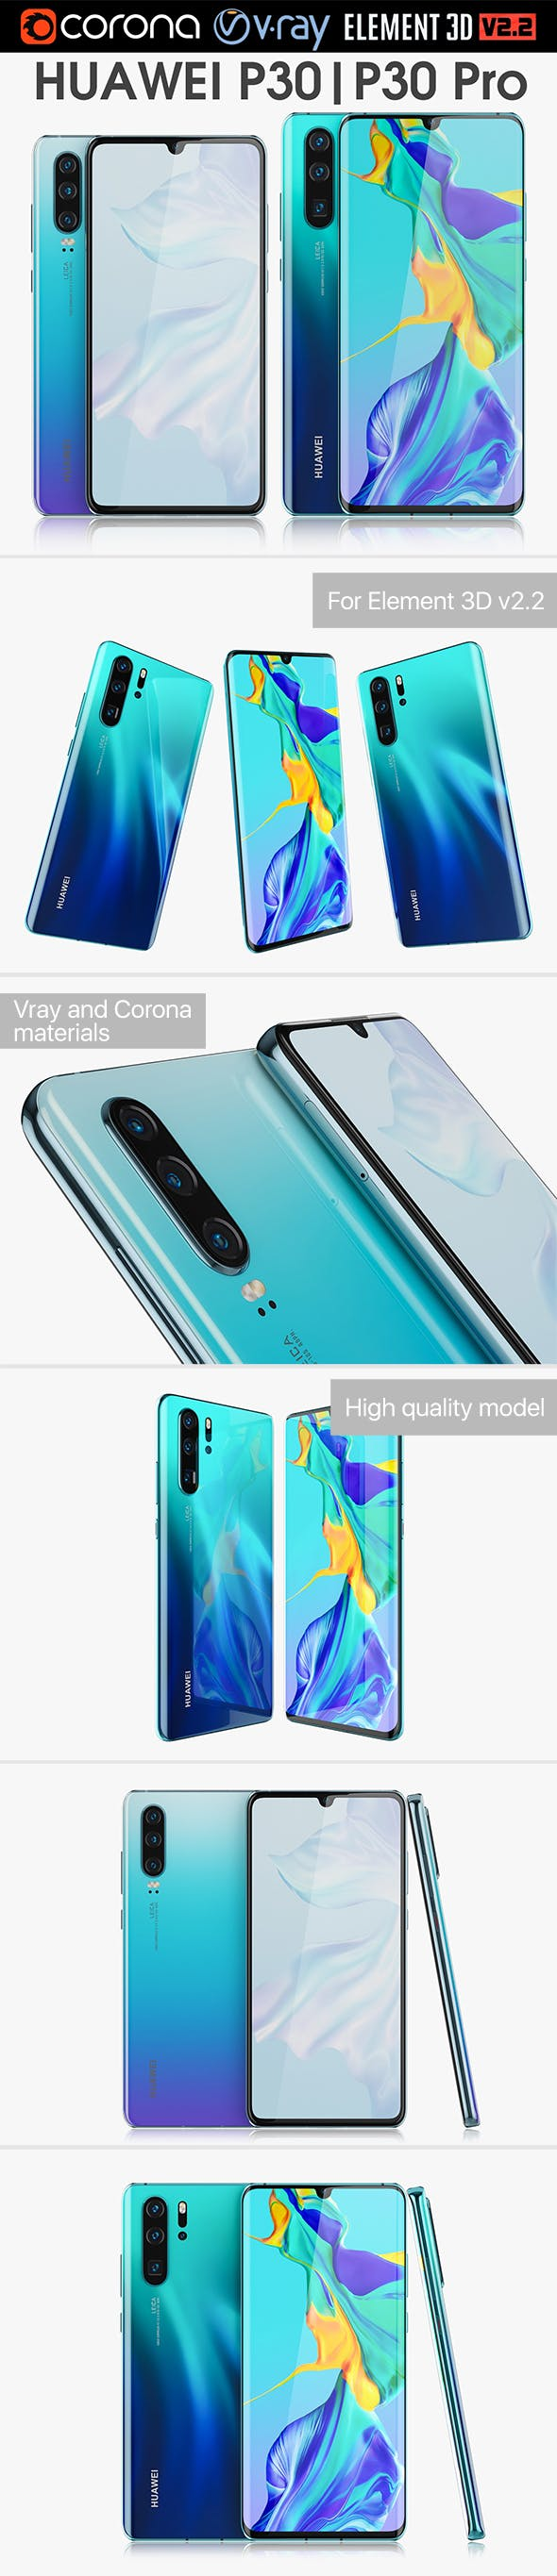 Huawei P30 Pro and Huawei P30 - 3DOcean Item for Sale